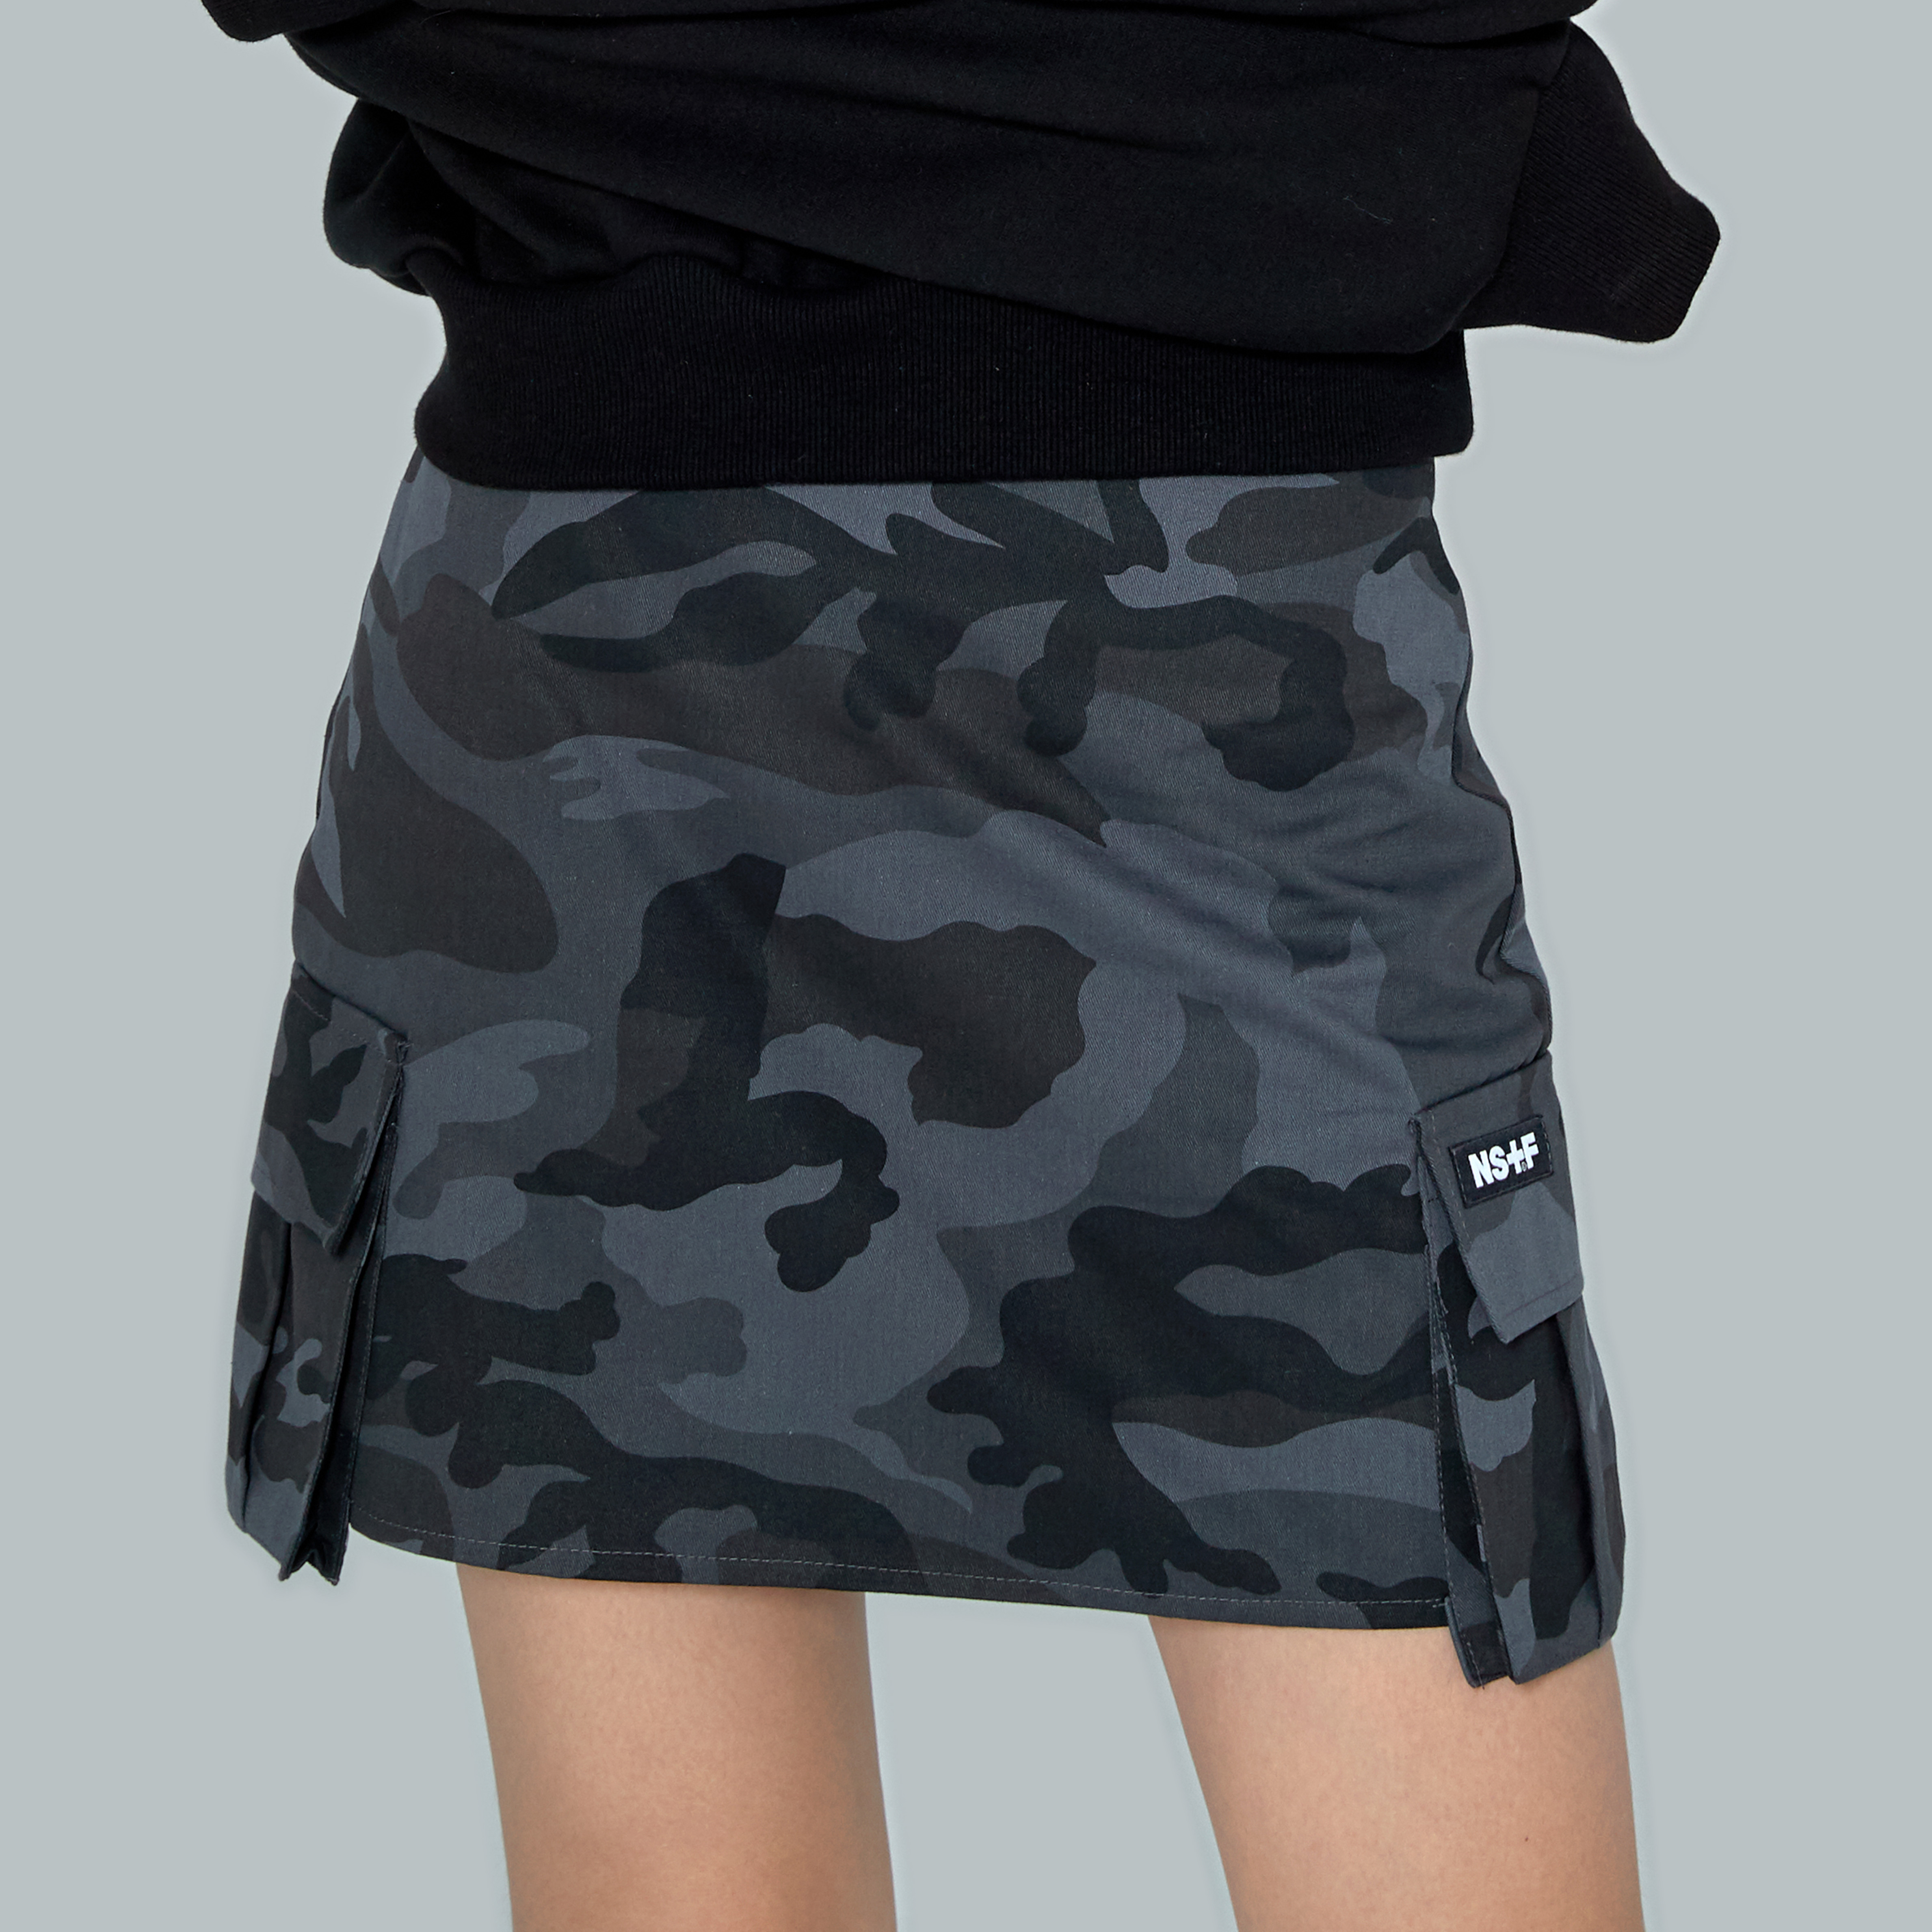 [NF] NF CAMO CARGO MINI SKIRT BLK (NF19S083H)